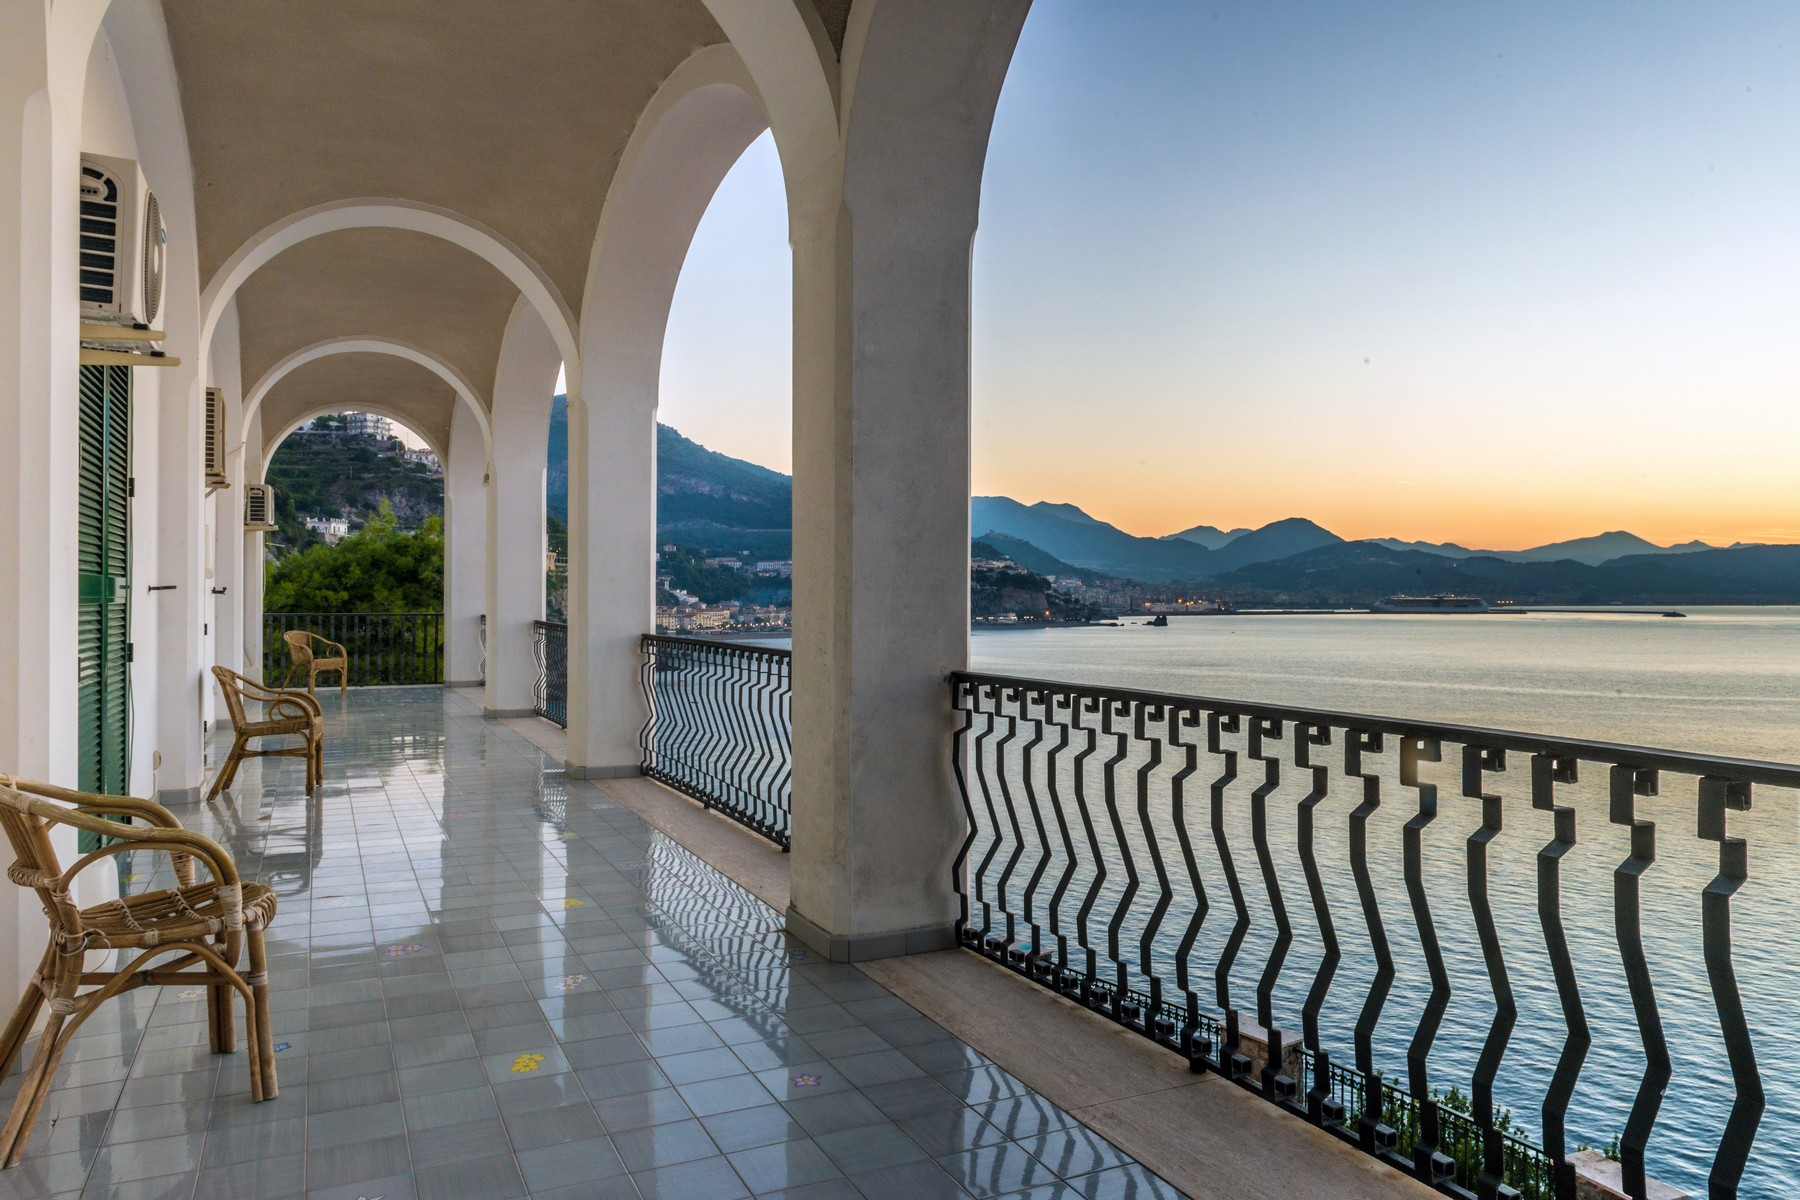 Additional photo for property listing at Unique seafront villa on the Amalfi Coast Vietri sul Mare Vietri Sul Mare, Salerno 84019 Italien